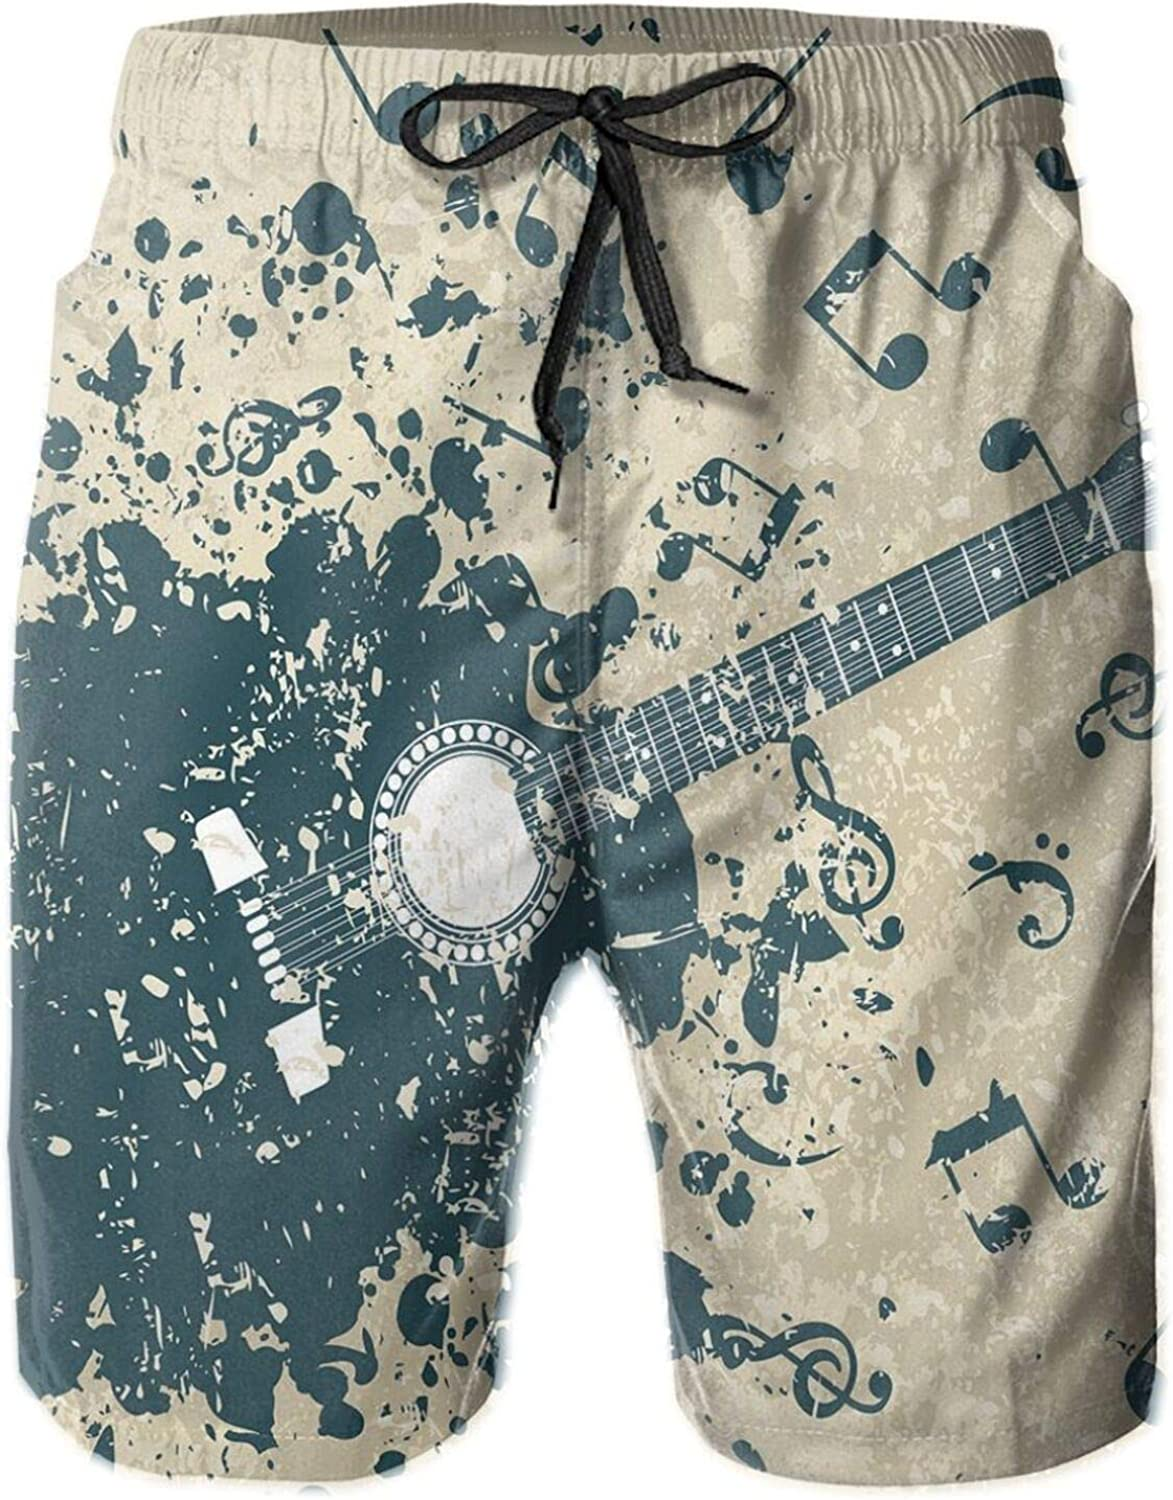 Acoustic Guitar On Retro Murky Background with Music Notes Melody Illustration Drawstring Waist Beach Shorts for Men Swim Trucks Board Shorts with Mesh Lining,L